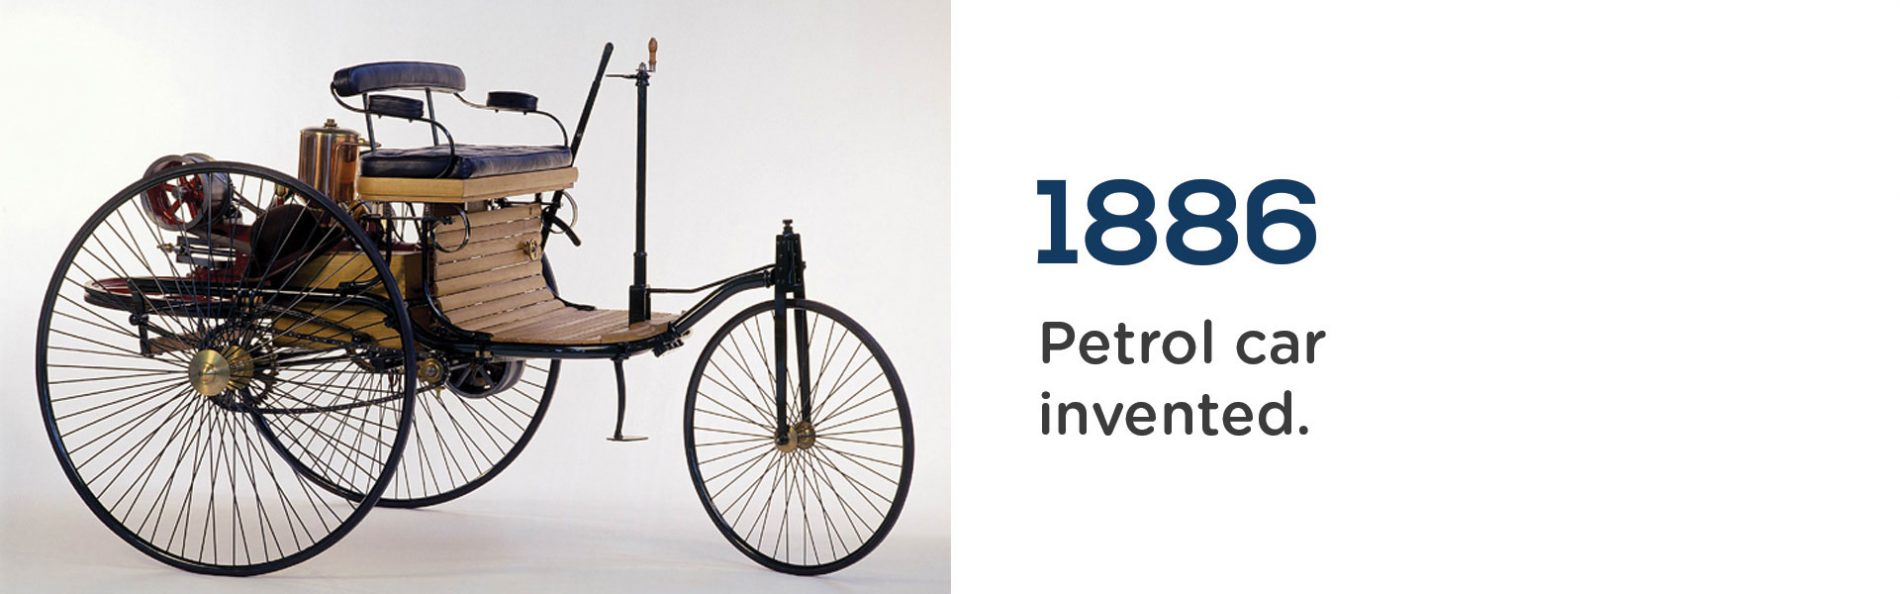 The first petrol car was invented in 1886 by Karl Benz. Wrigley Claydon Solicitors, Trusted for 200 years